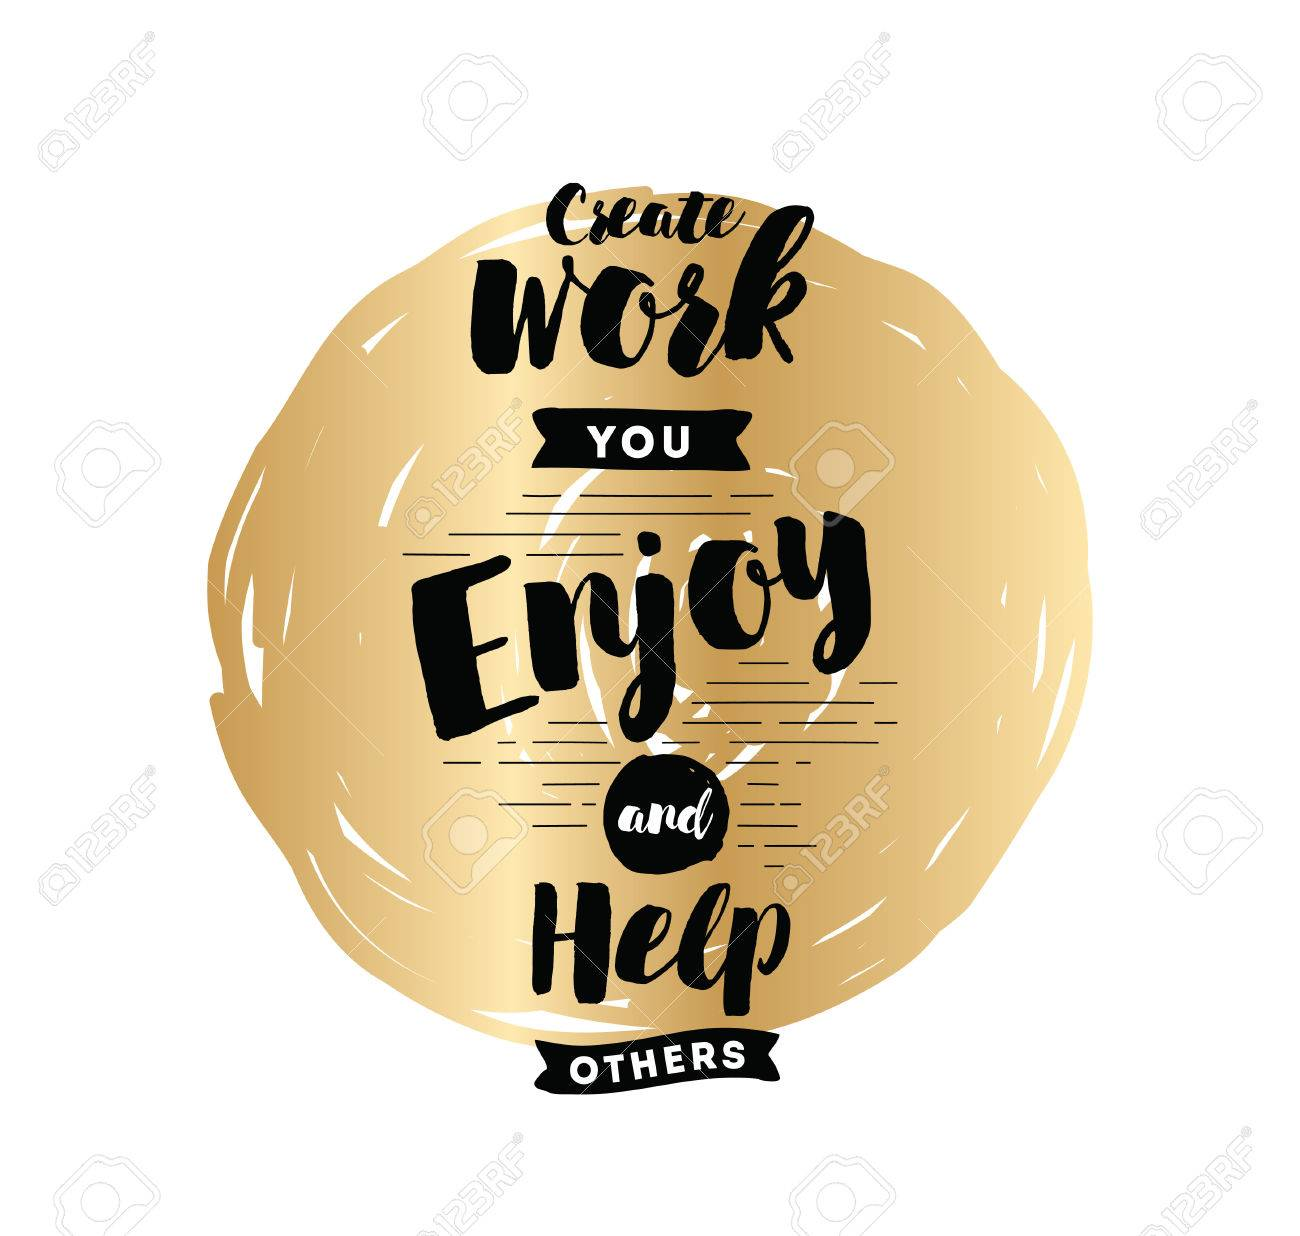 Create Work You Enjoy And Help Others Inspirational Quote